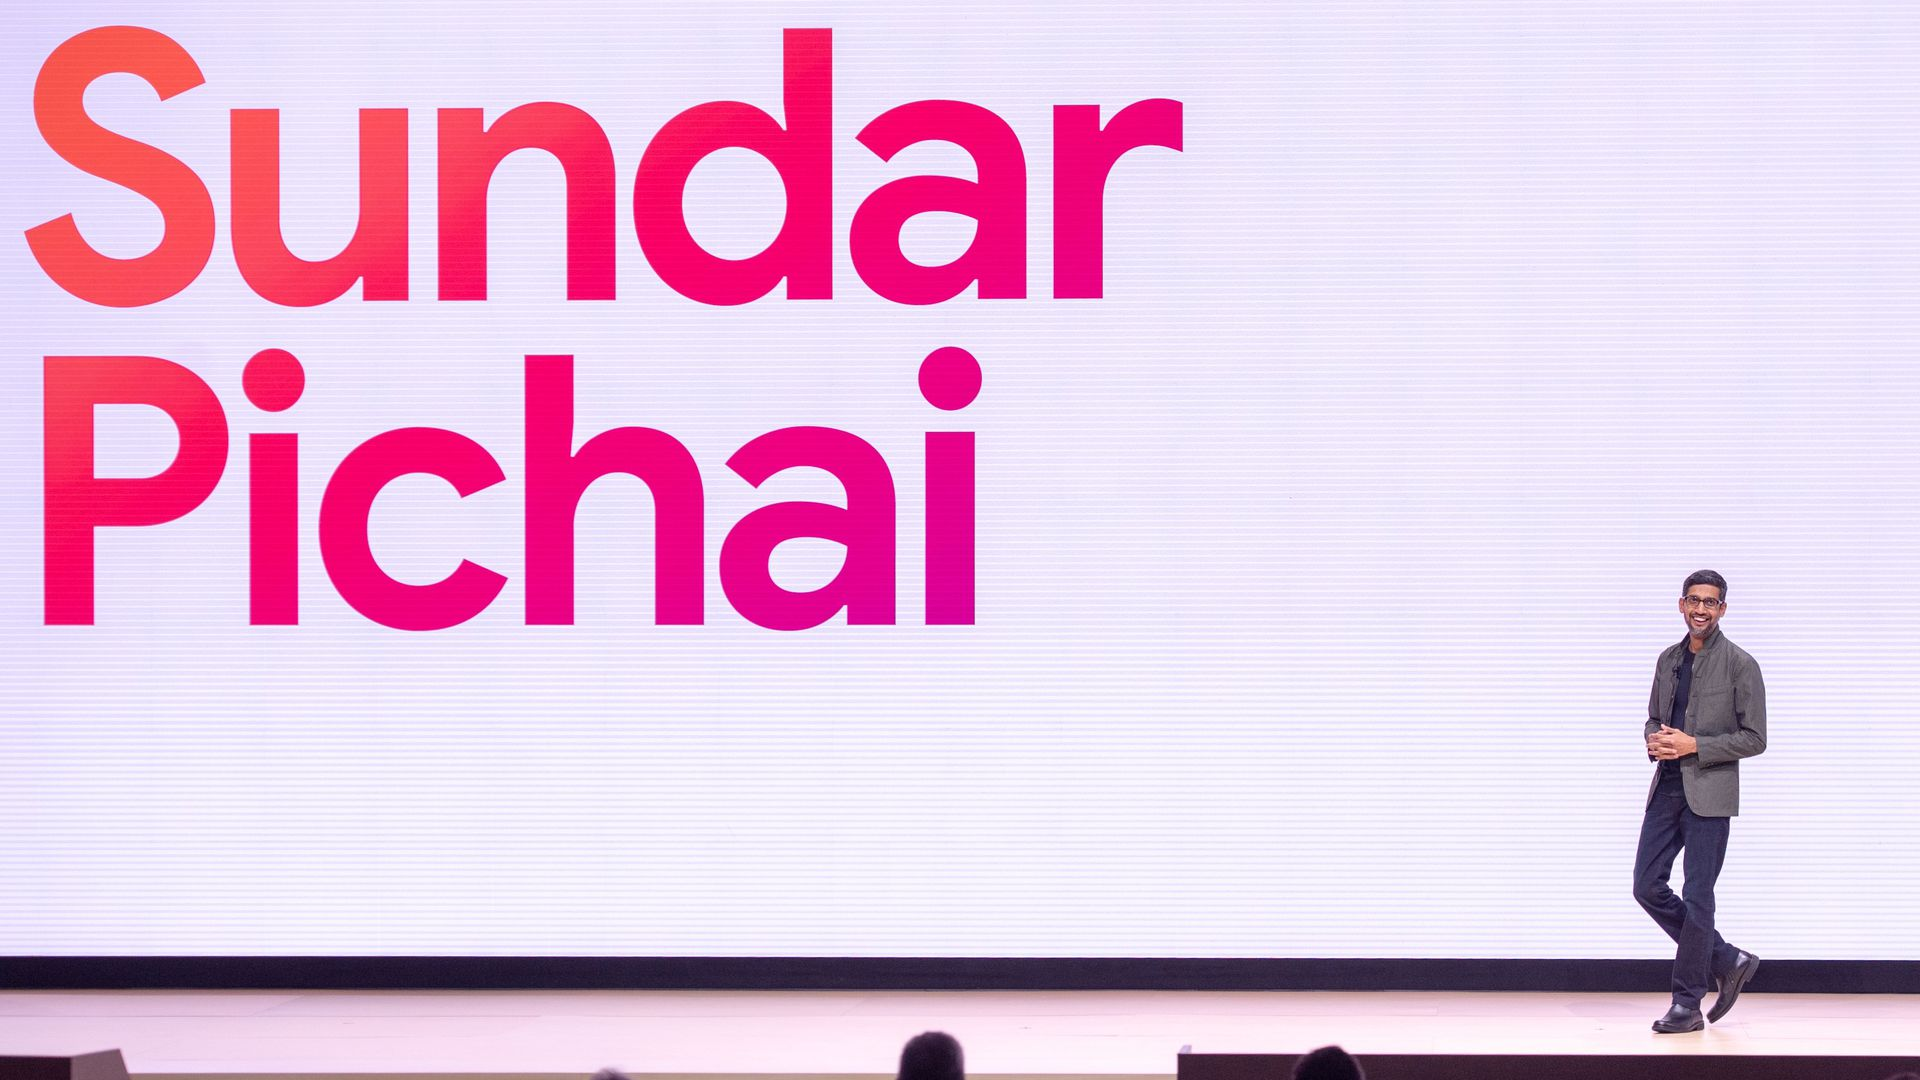 Sundar Pichai walks on a stage where a screen displays his name.